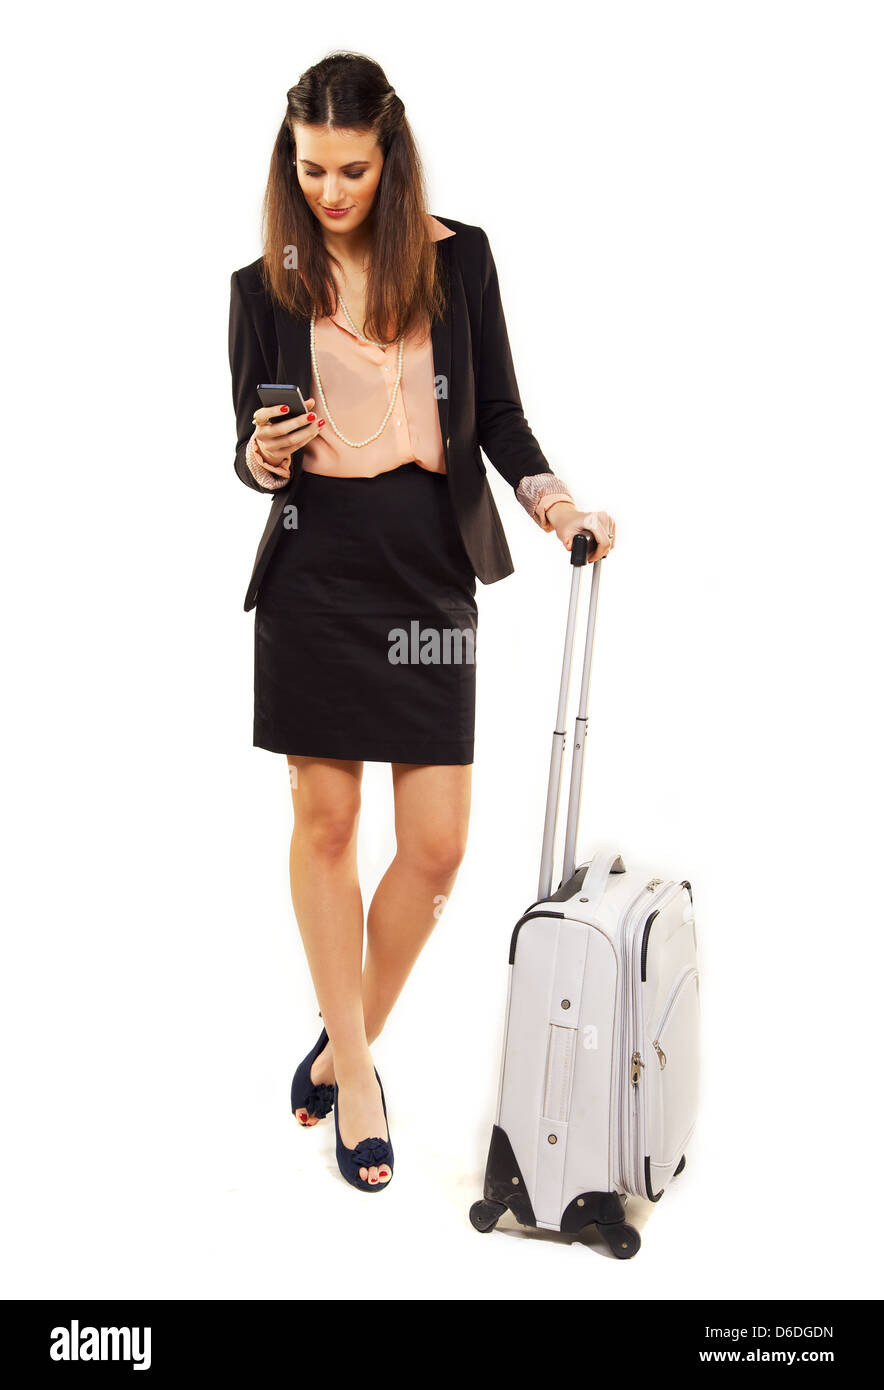 Woman on business trip reading text messages on her cellphone - Stock Image